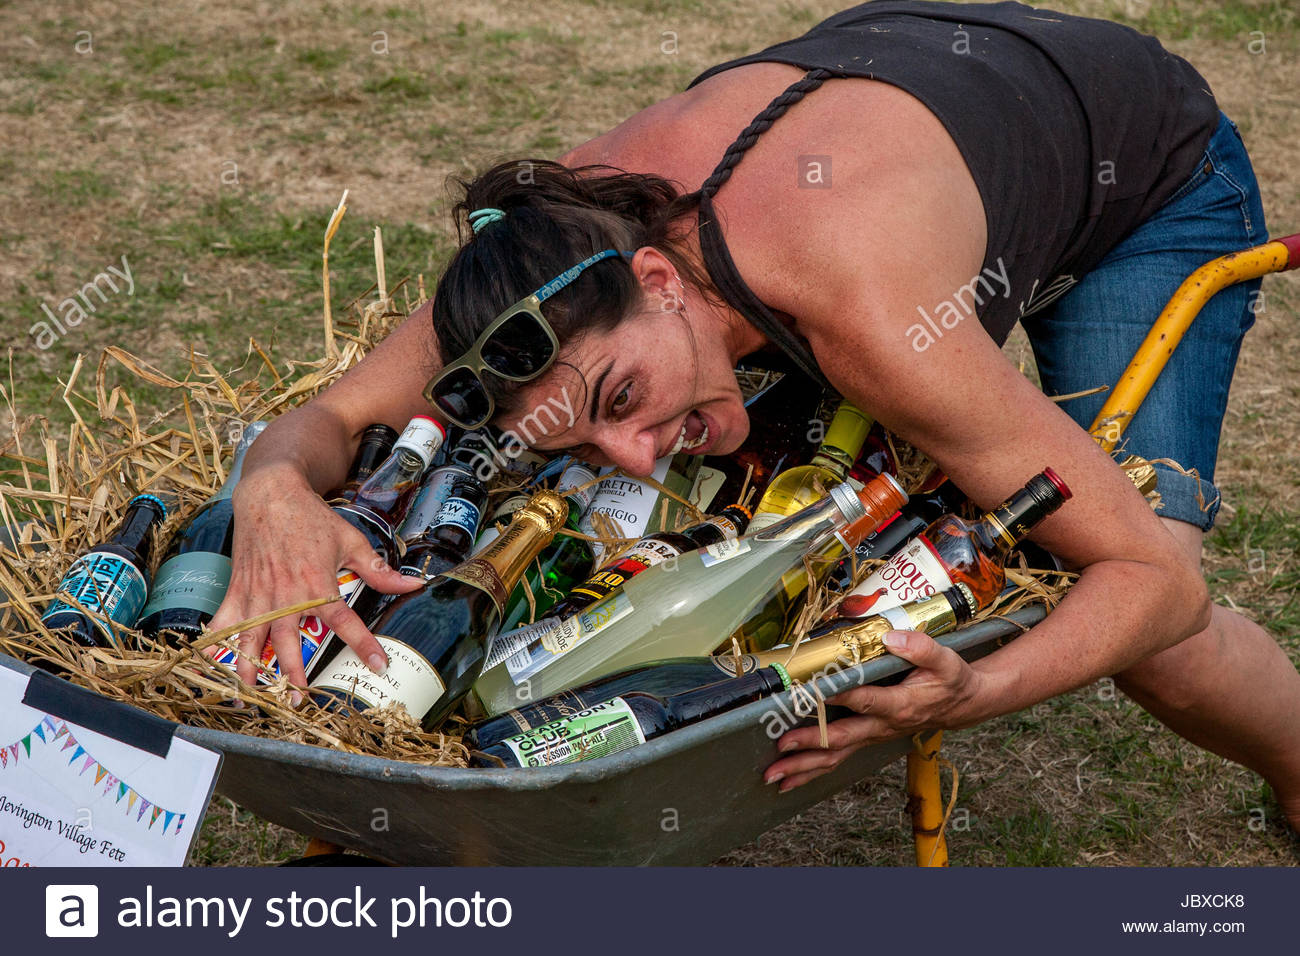 An Excited Woman Wins The 'Barrow of Booze' At The Jevington Fete, Eastbourne, Sussex, UK - Stock Image